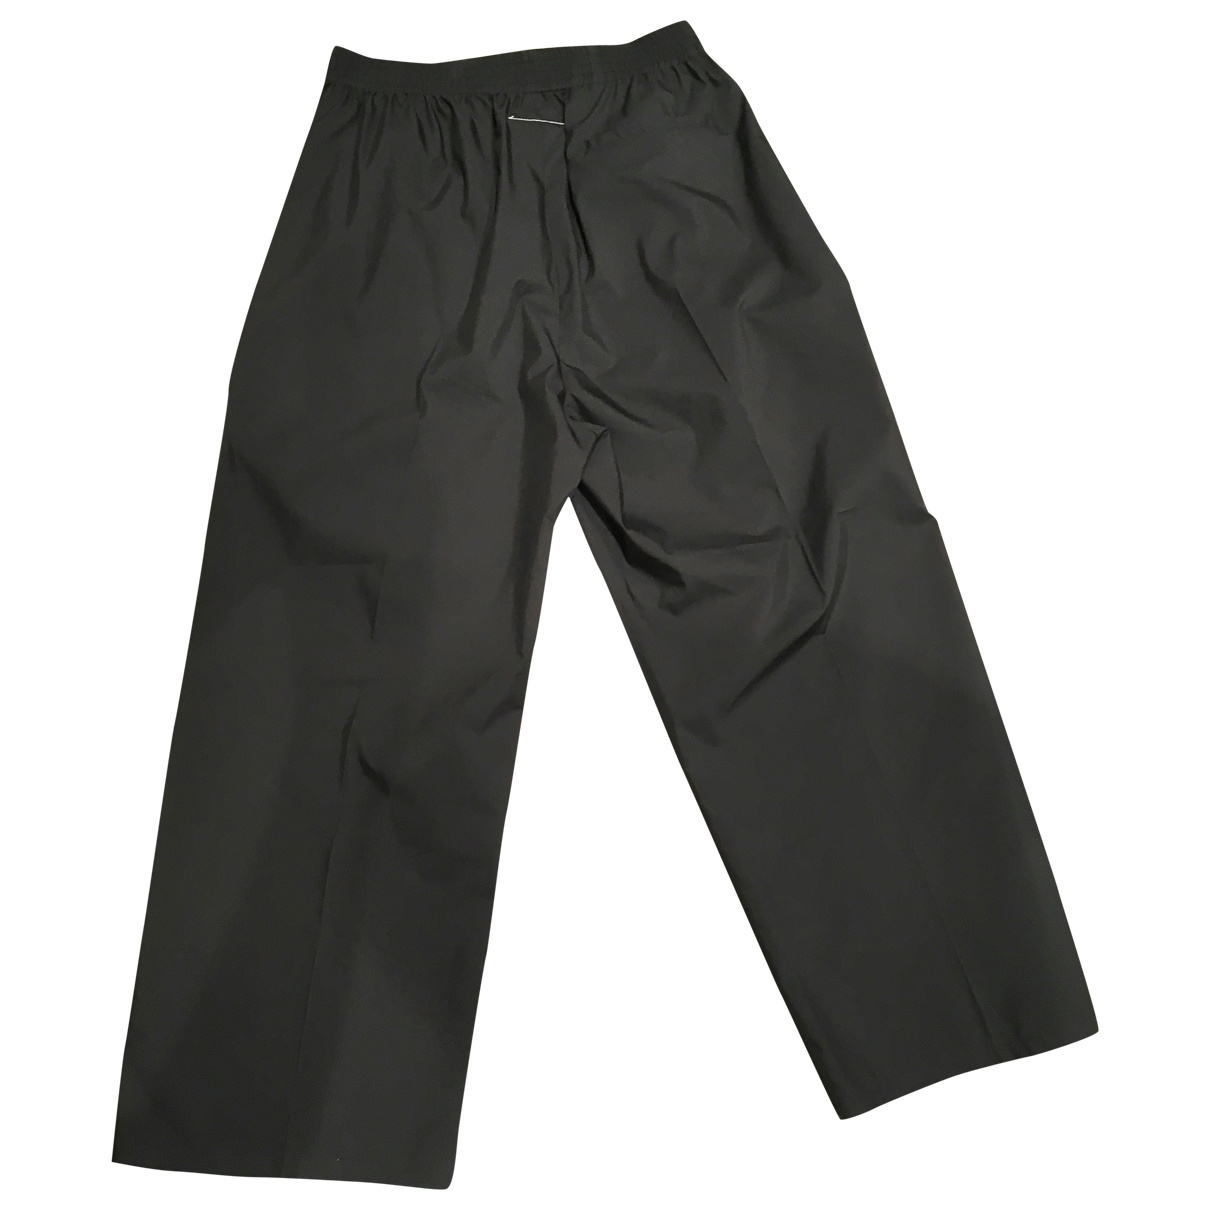 Mm6 \N Black Cotton Trousers for Women 42 IT